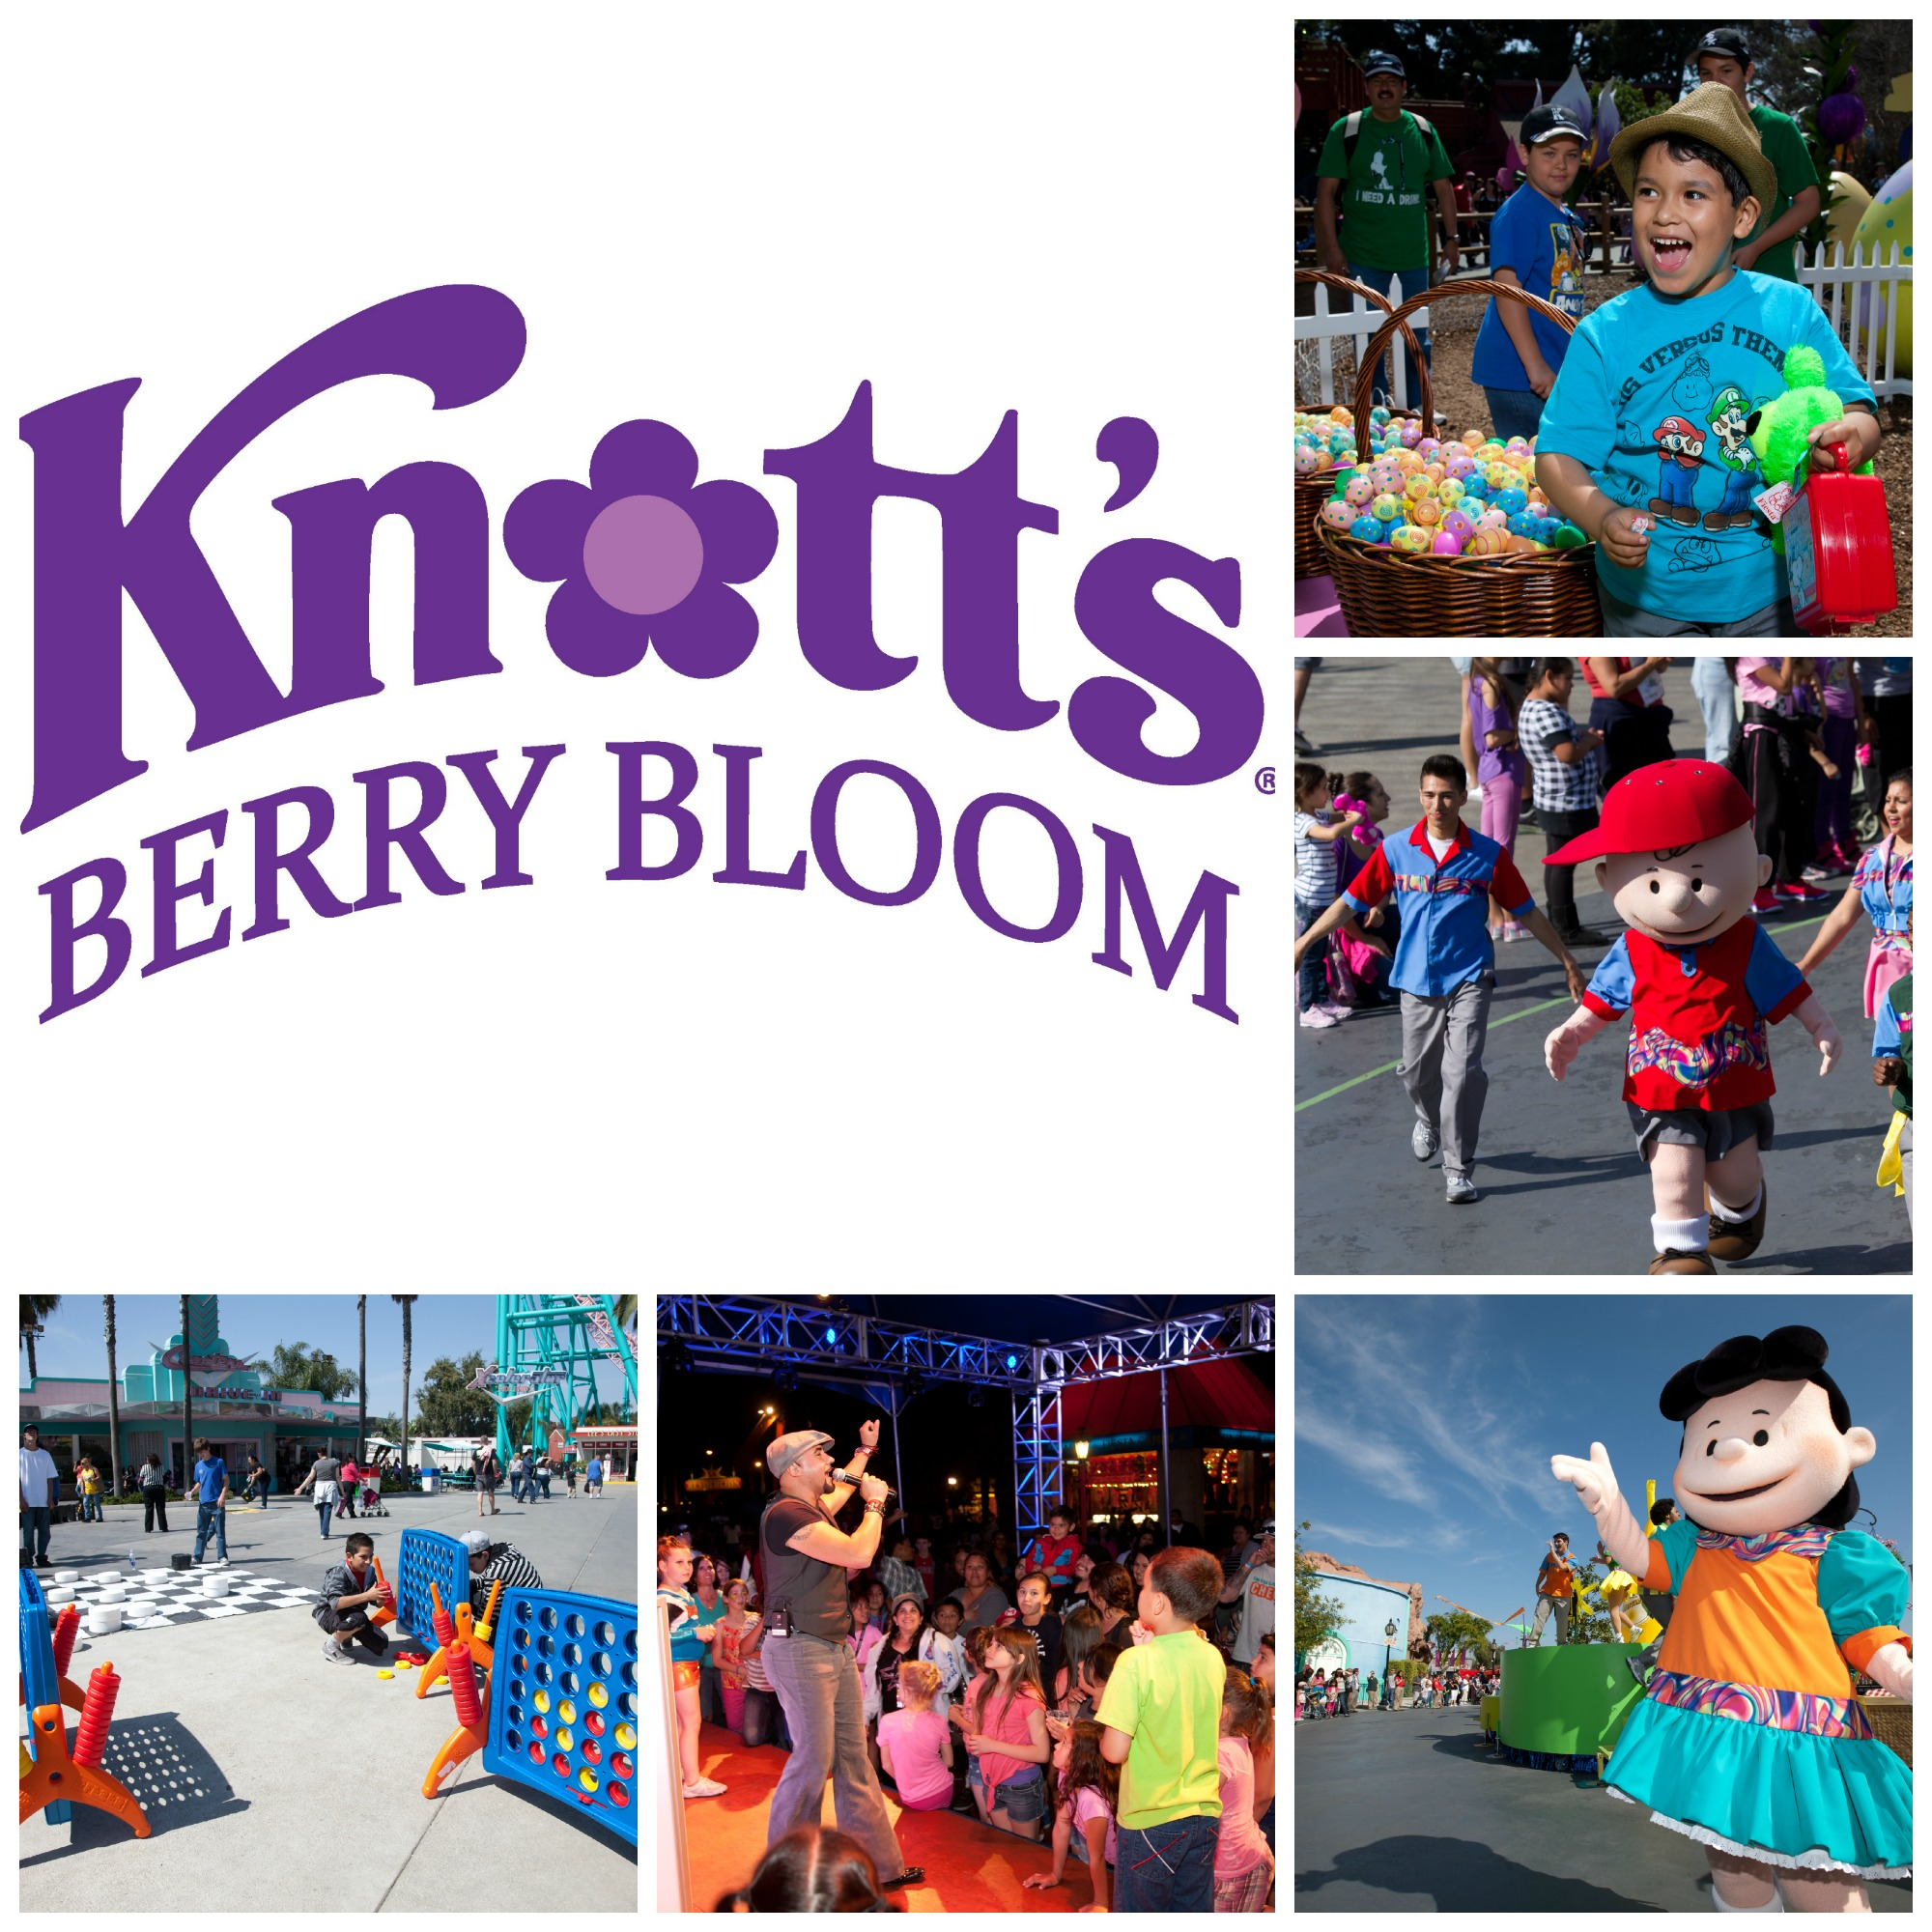 Knott's Berry Bloom